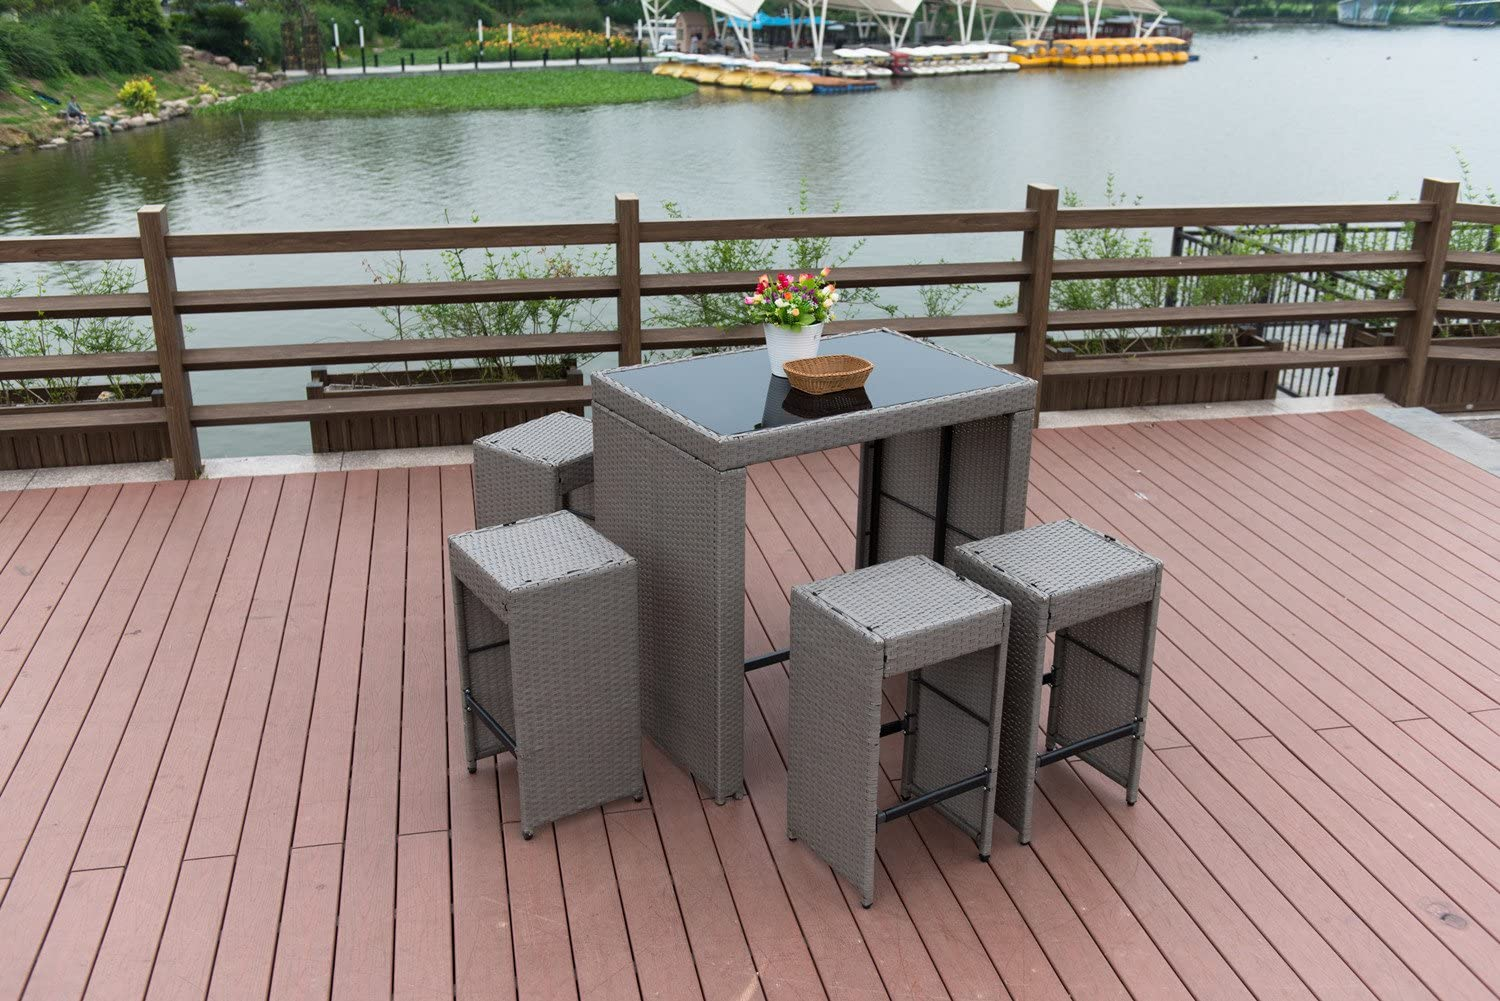 PatioPost Outdoor 5 Pcs Grey Wicker Bar Set Glass Bar and Four Stools with Cushions – Perfect for Patios, Backyards, Porches, Gardens or Poolside